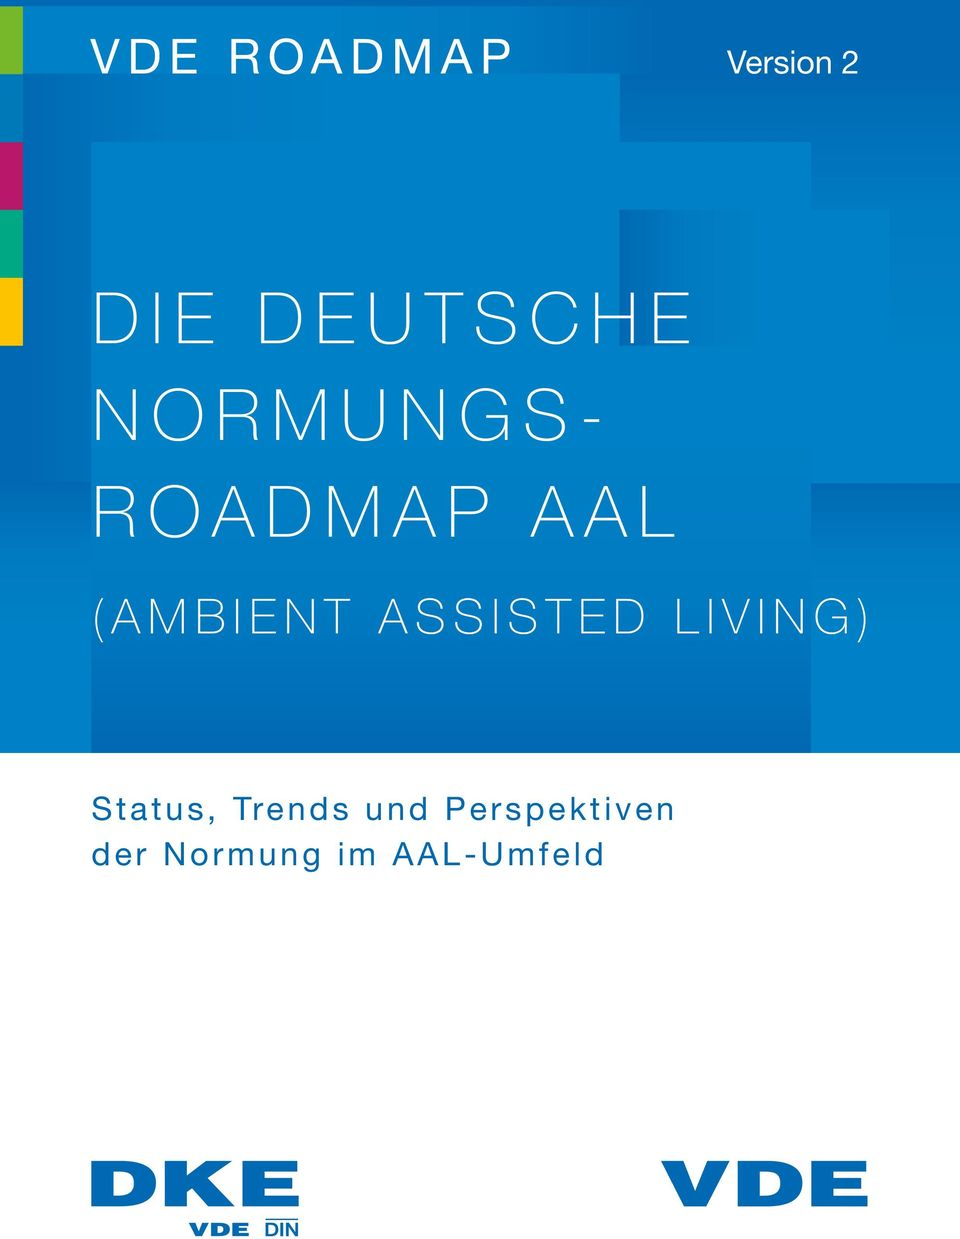 ASSISTED LIVING) Status, Trends